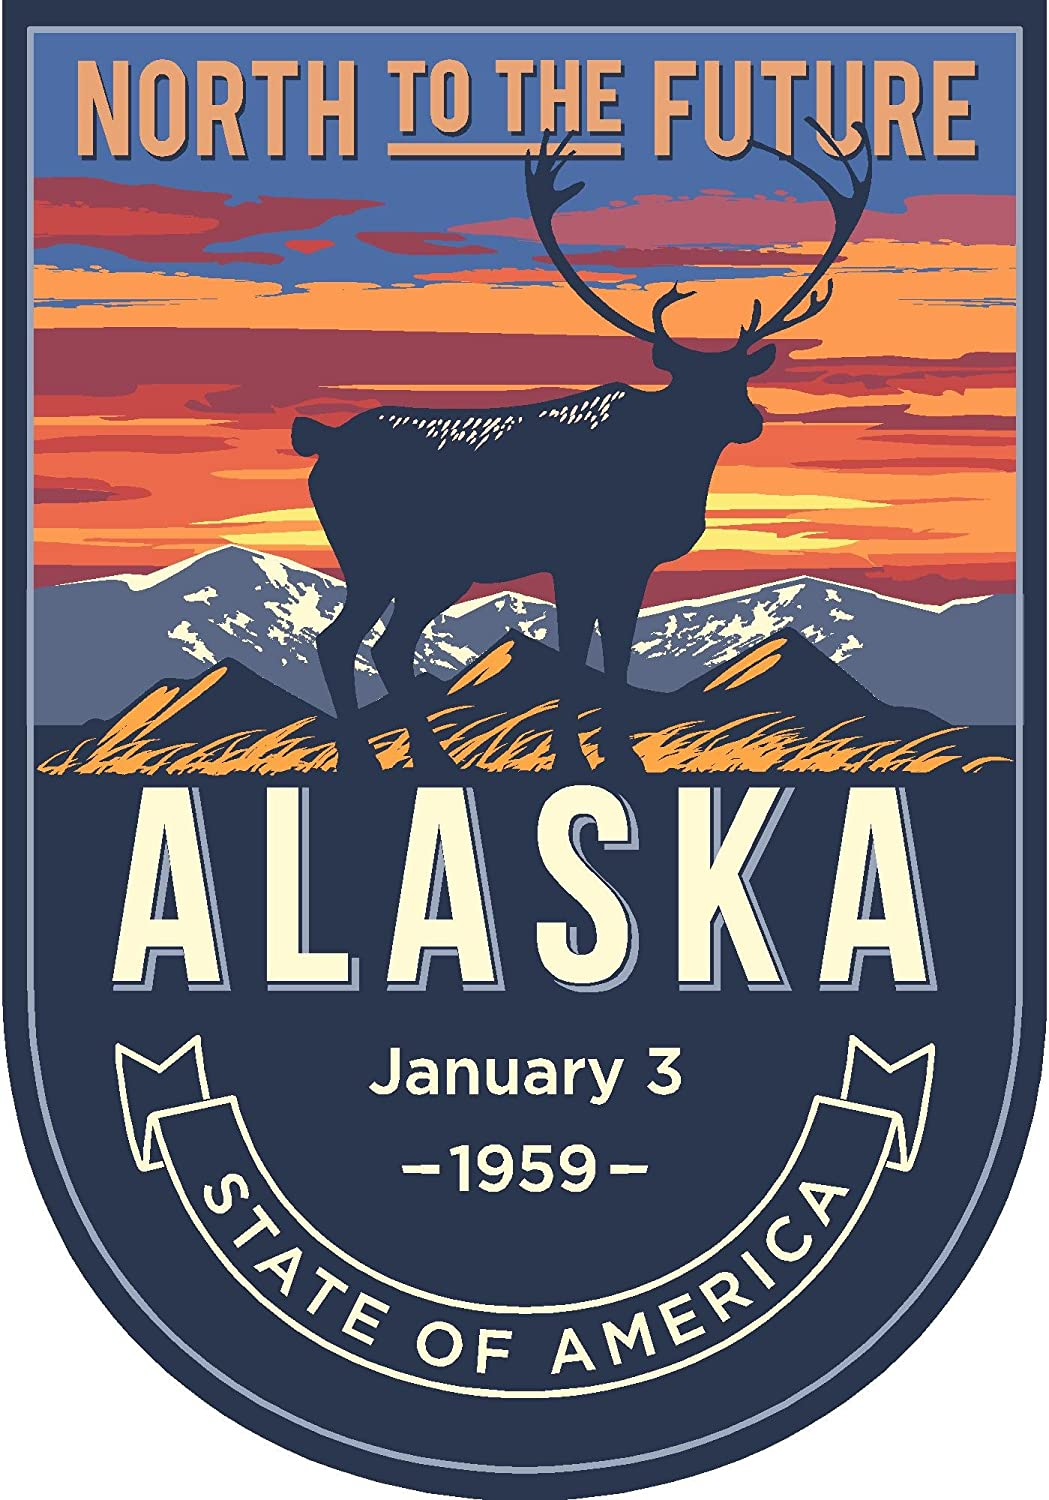 State Animal Alaska Night 4x5.5 inches Sticker Decal die Cut Vinyl - Made and Shipped in USA